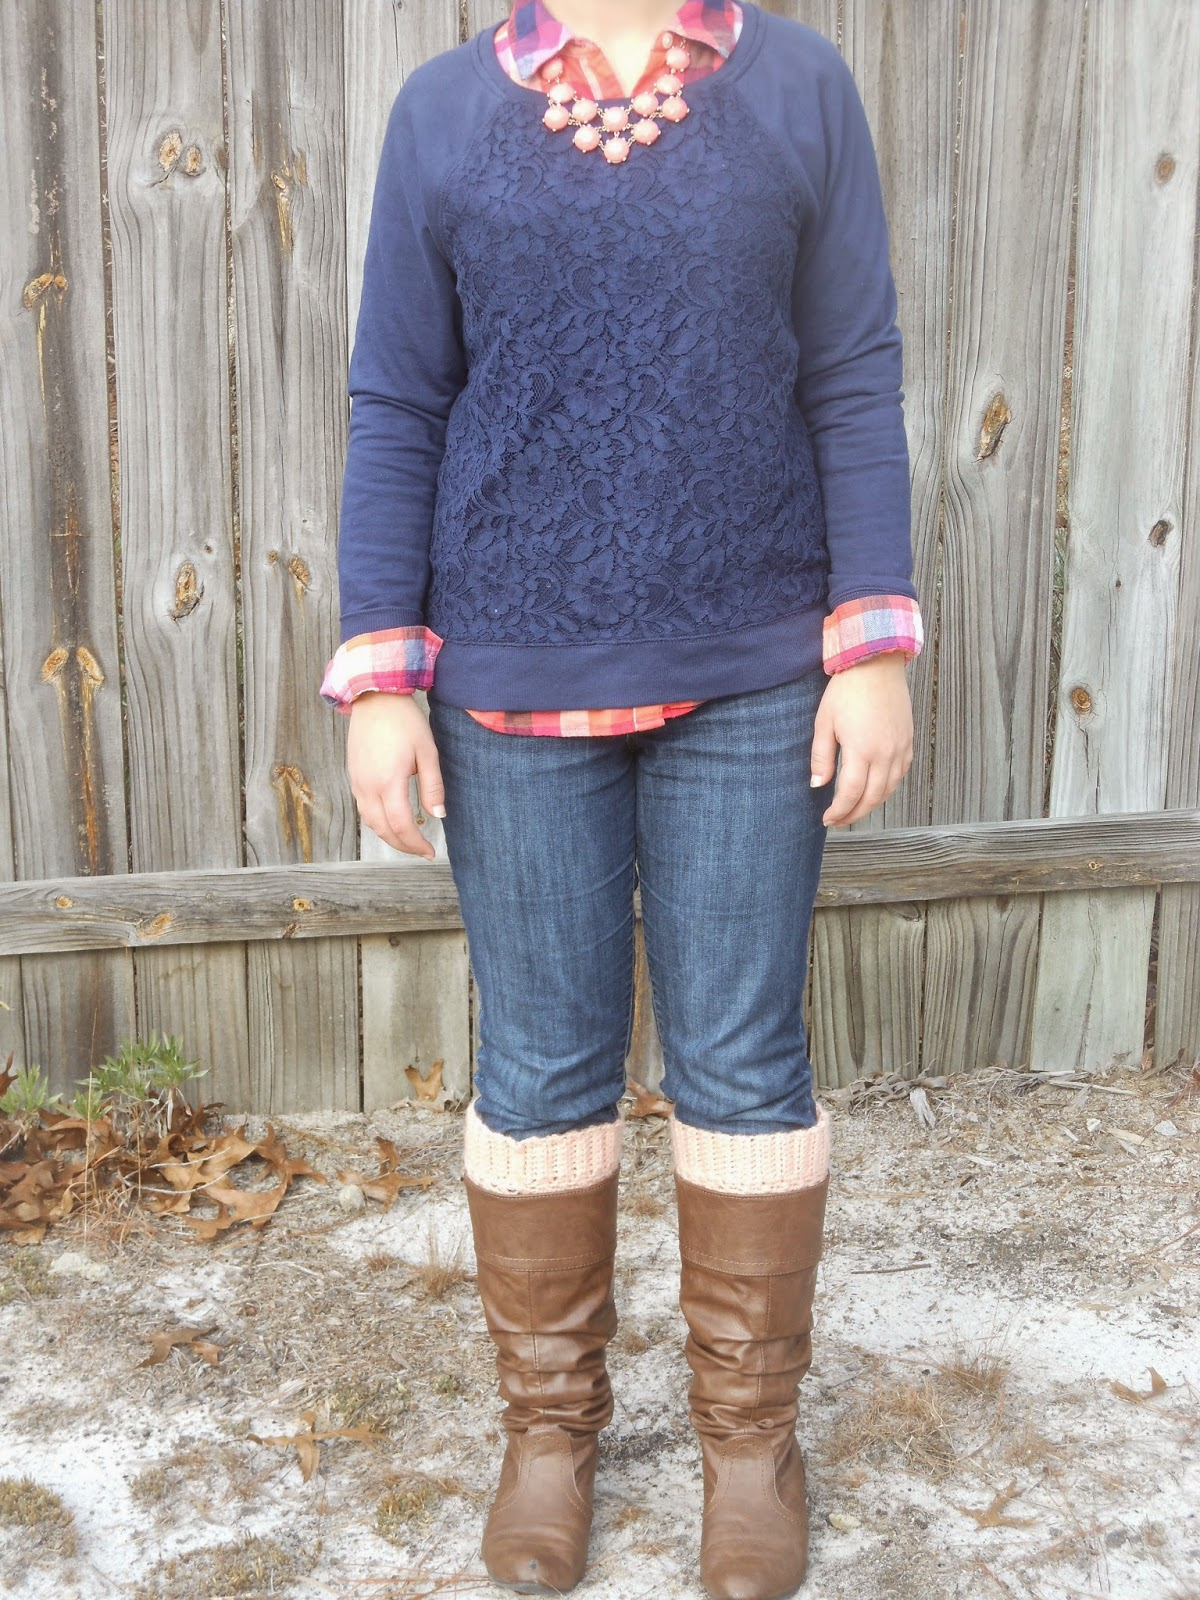 PMT Style Challenge: Copy an Outfit You Pinned. Plaid button down, lace sweater, jeans, riding boots, boot socks, statement necklace